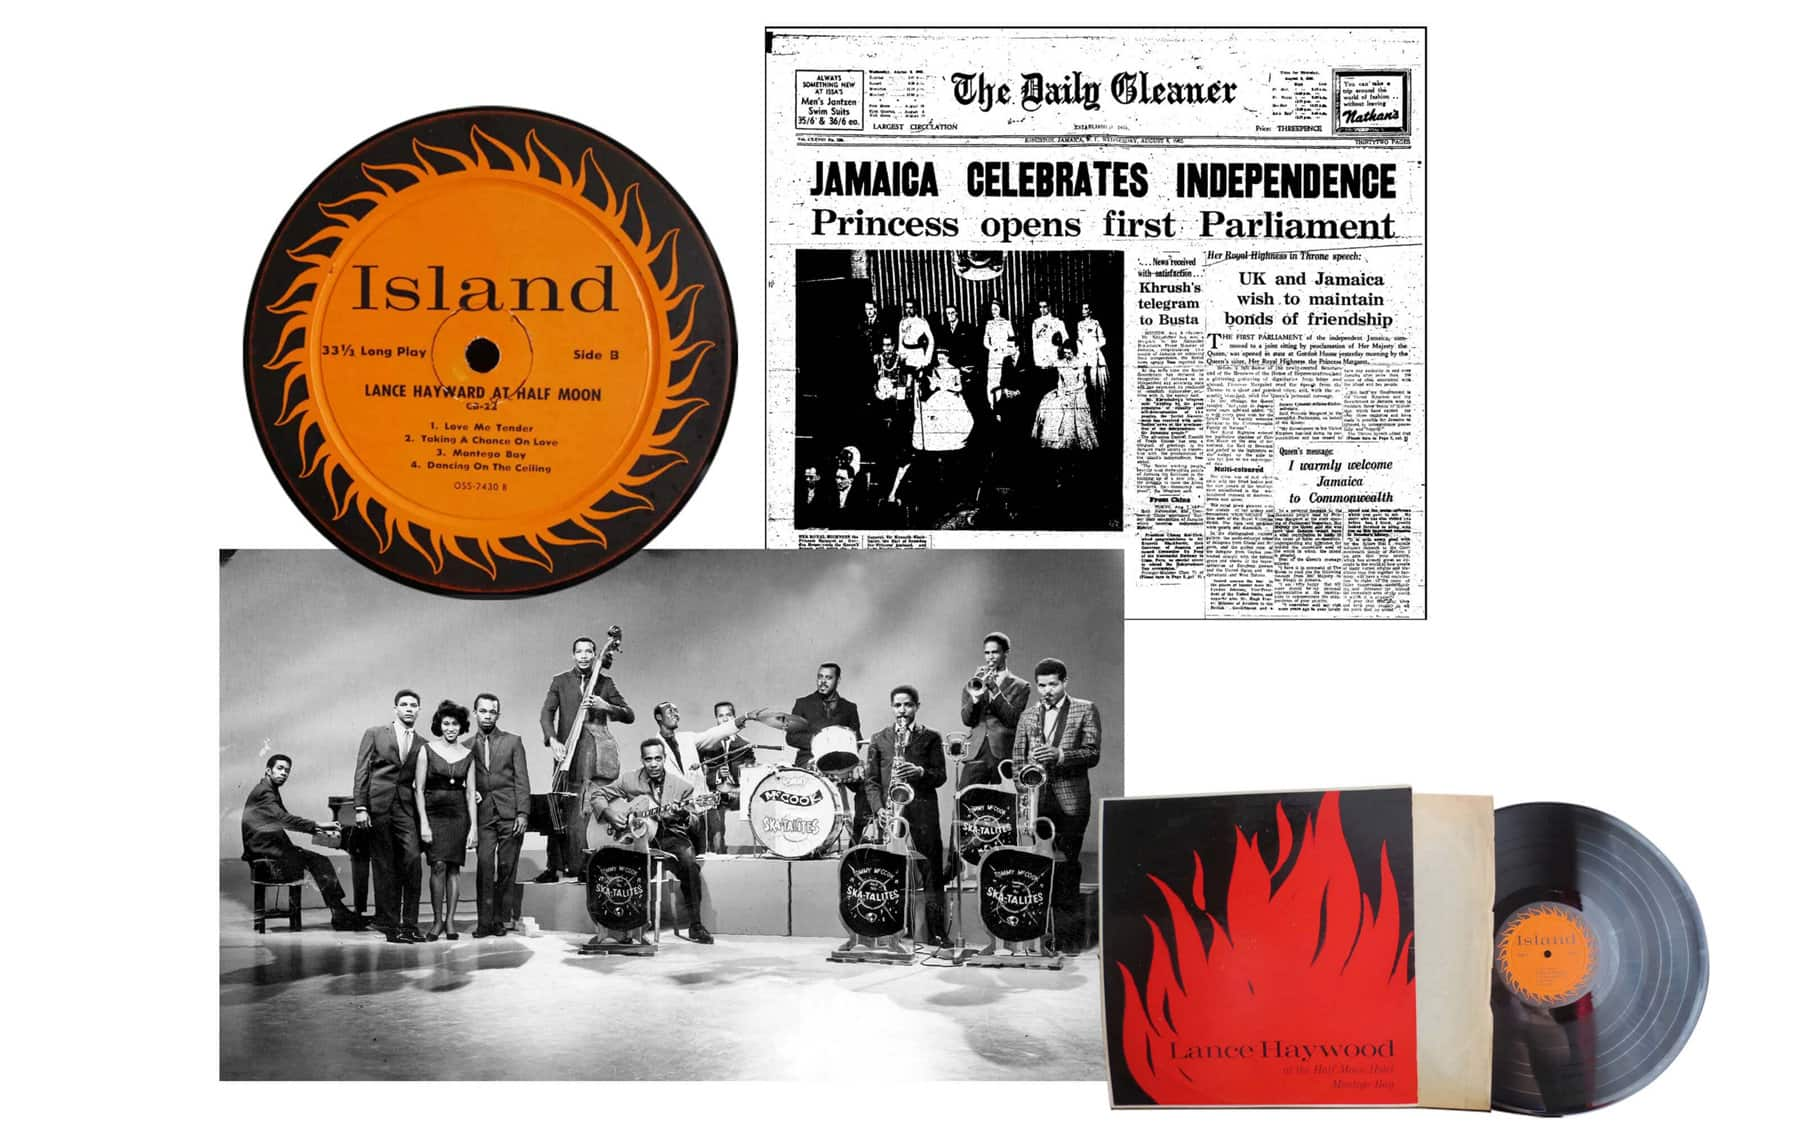 A collage of color and black-and-white photos of LPs from Island Records, the front page of a newspaper declaring Jamaica's independence and the Skatalites.